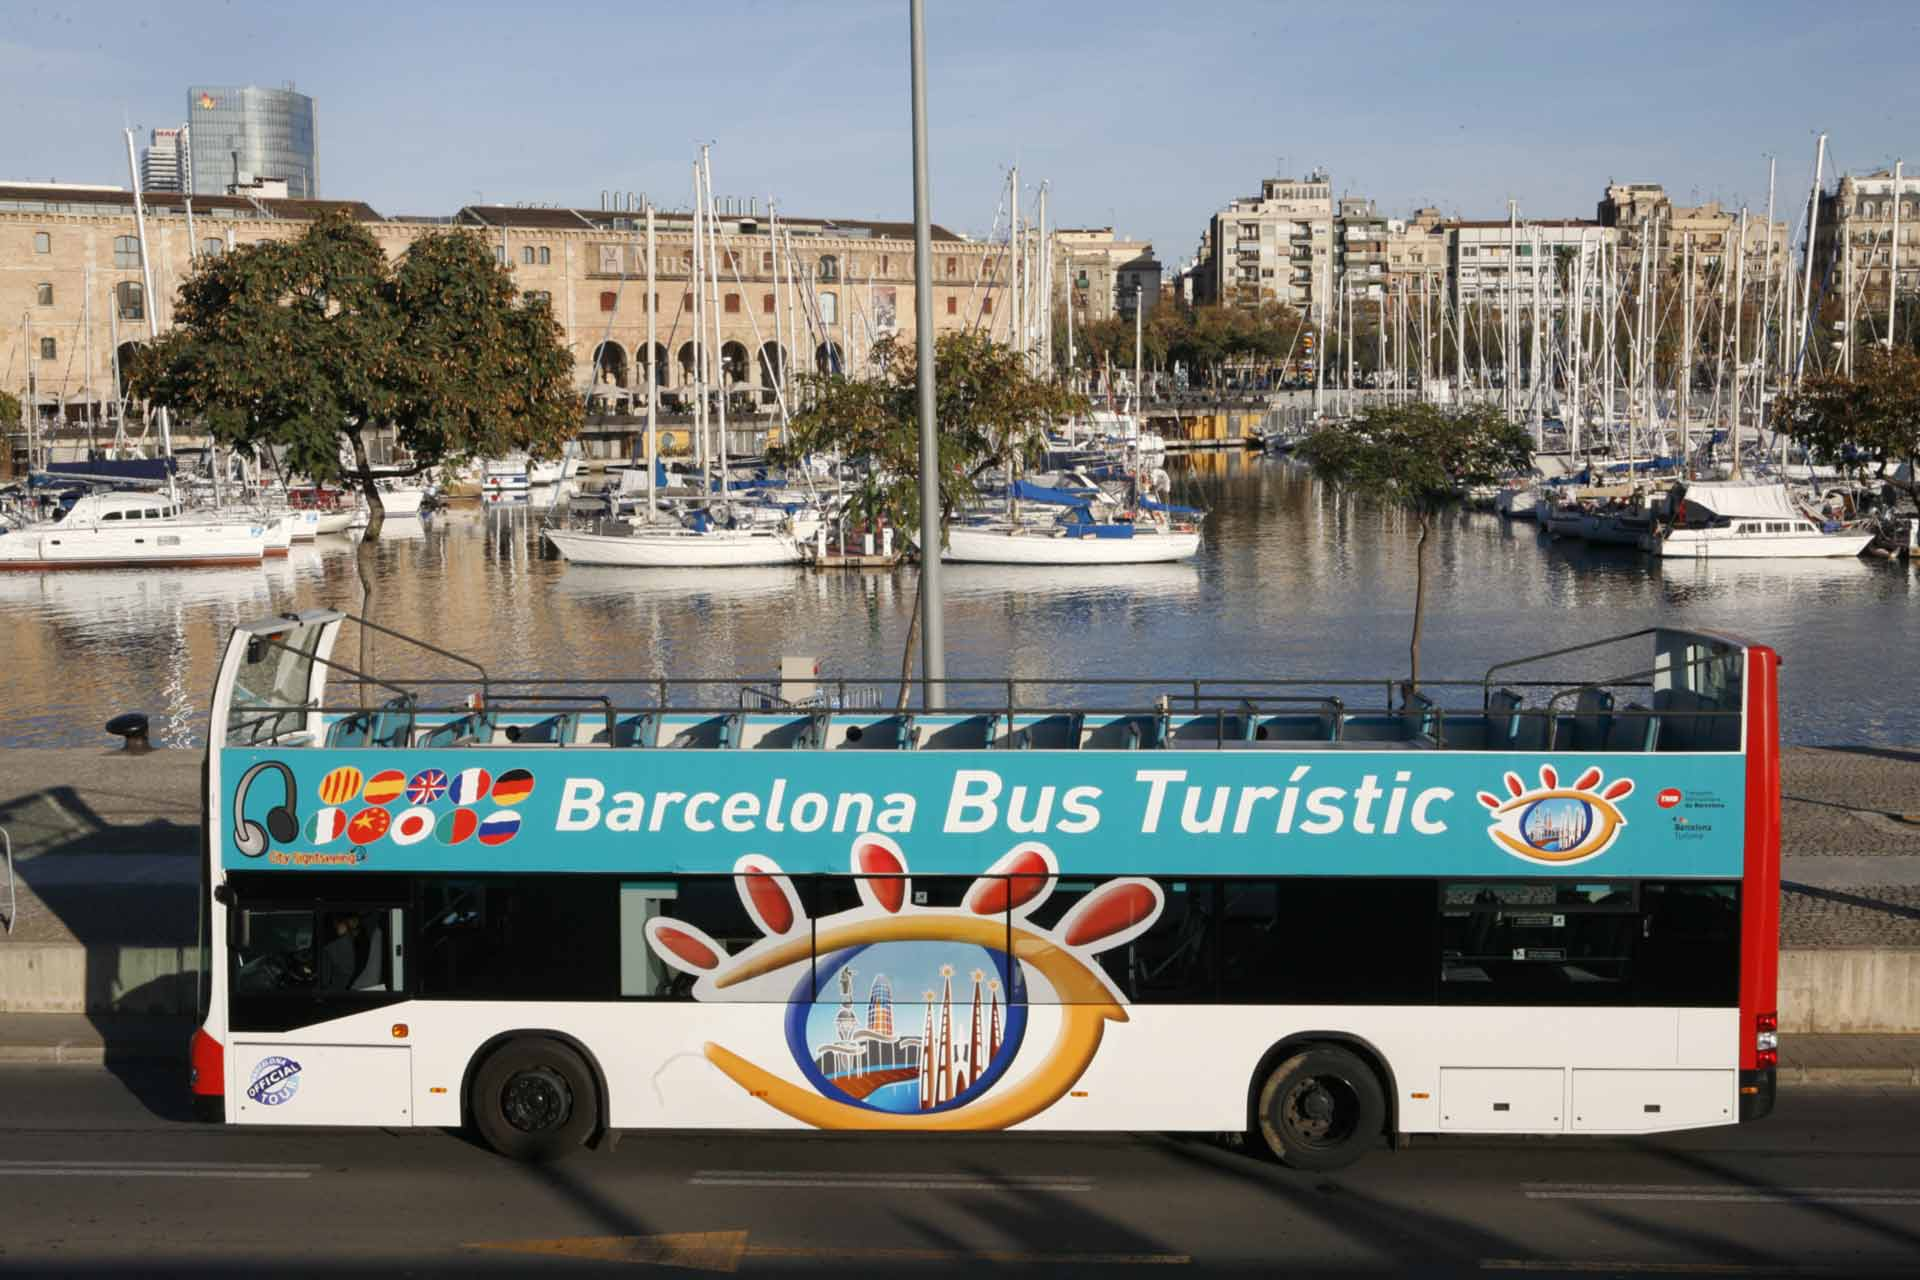 A photo of the tourist bus in Barcelona parked by the port.